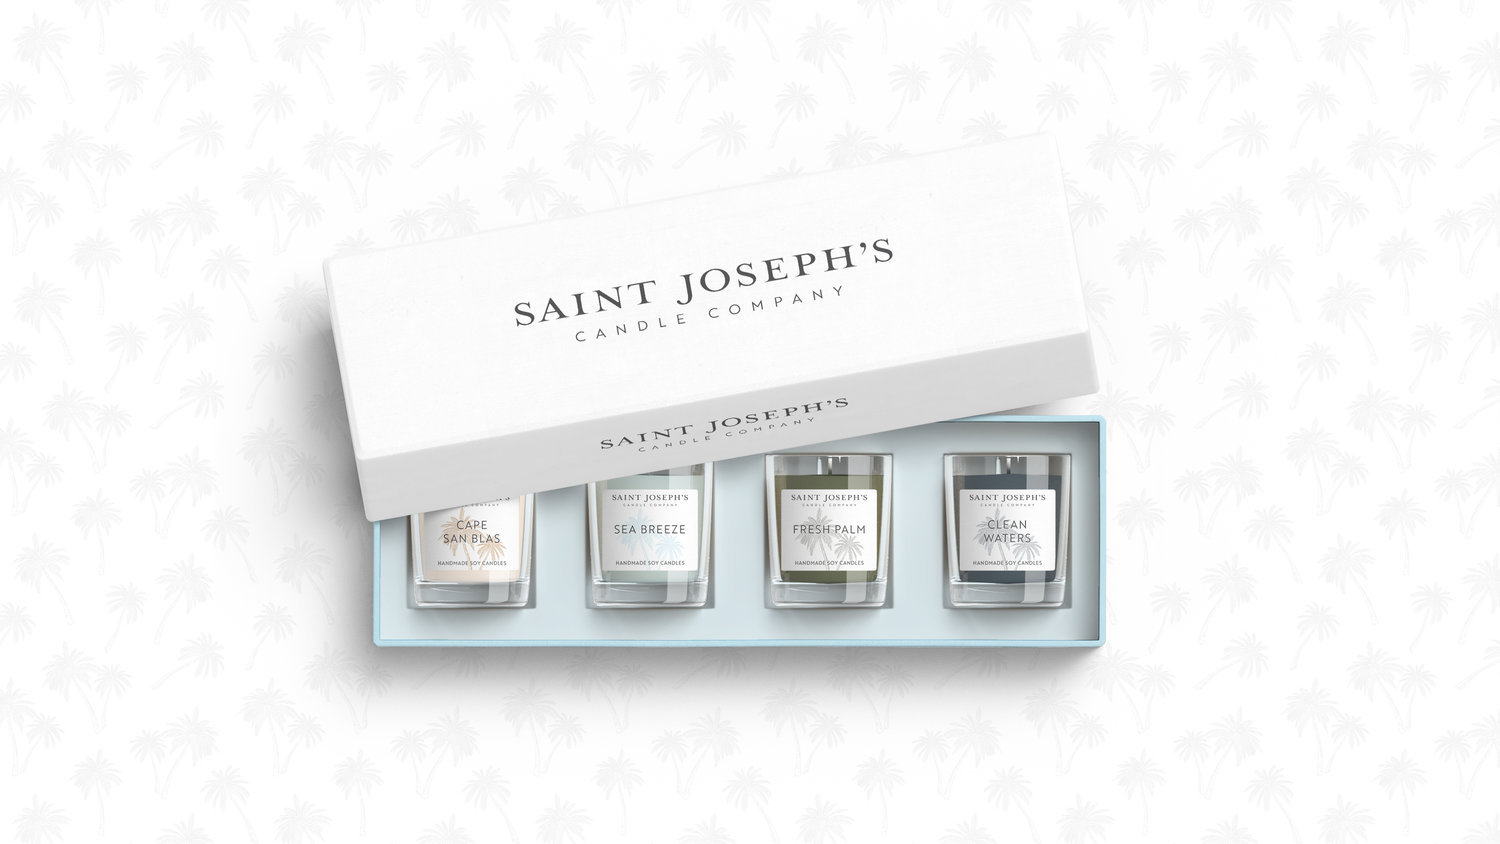 Brand and Packaging Design for Saint Joseph's Candle Company